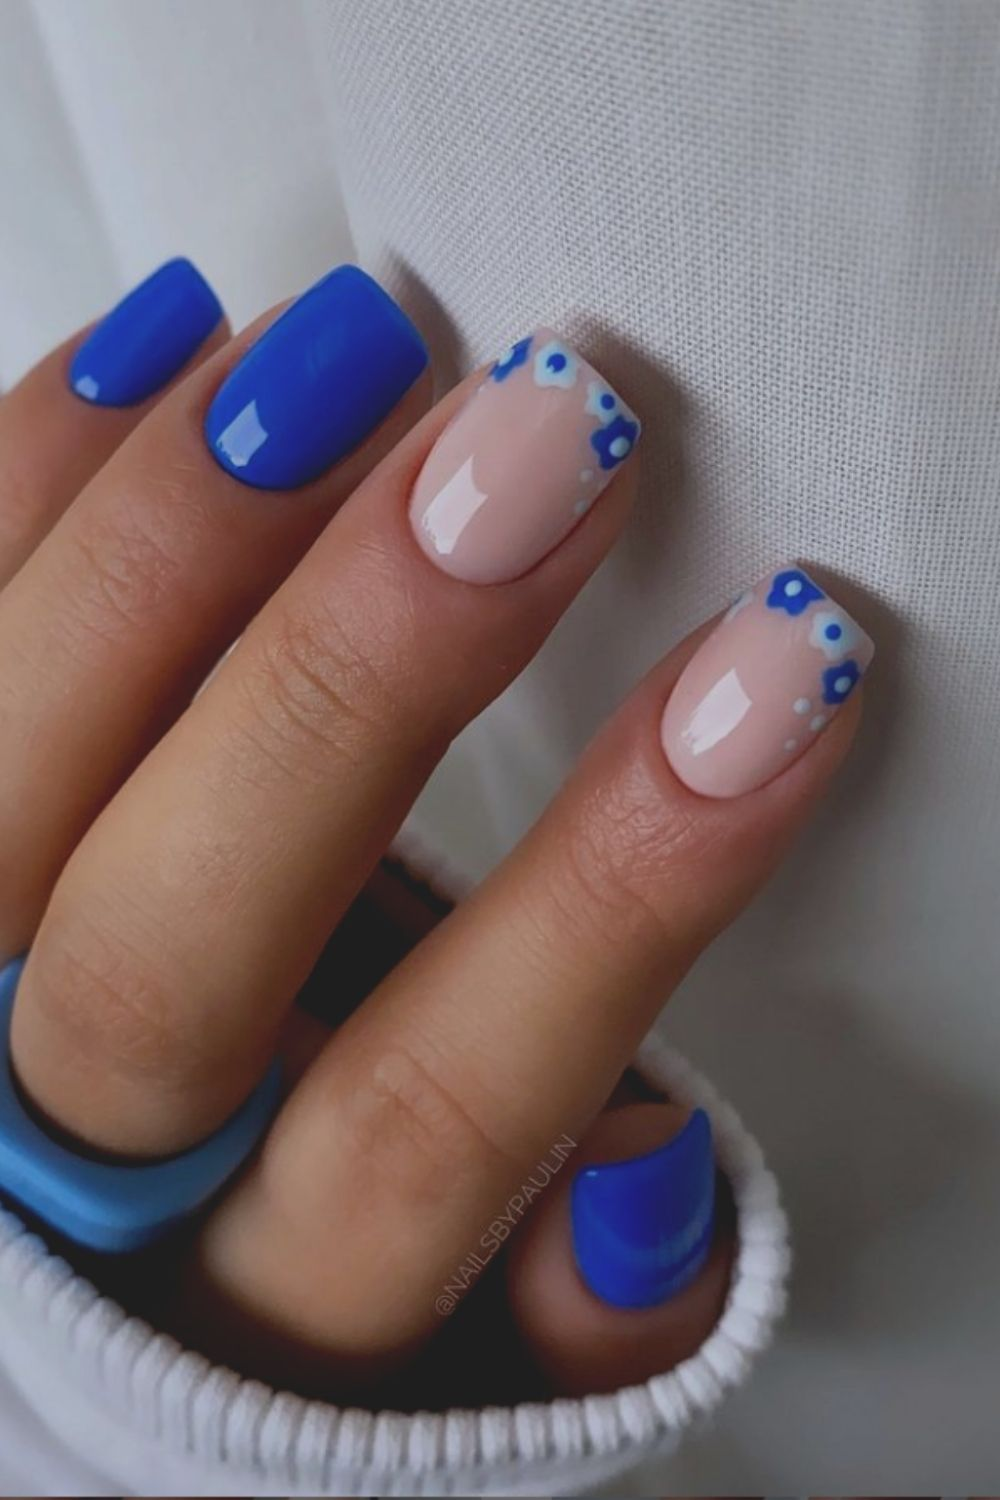 Flower tip and blue Frebch nails